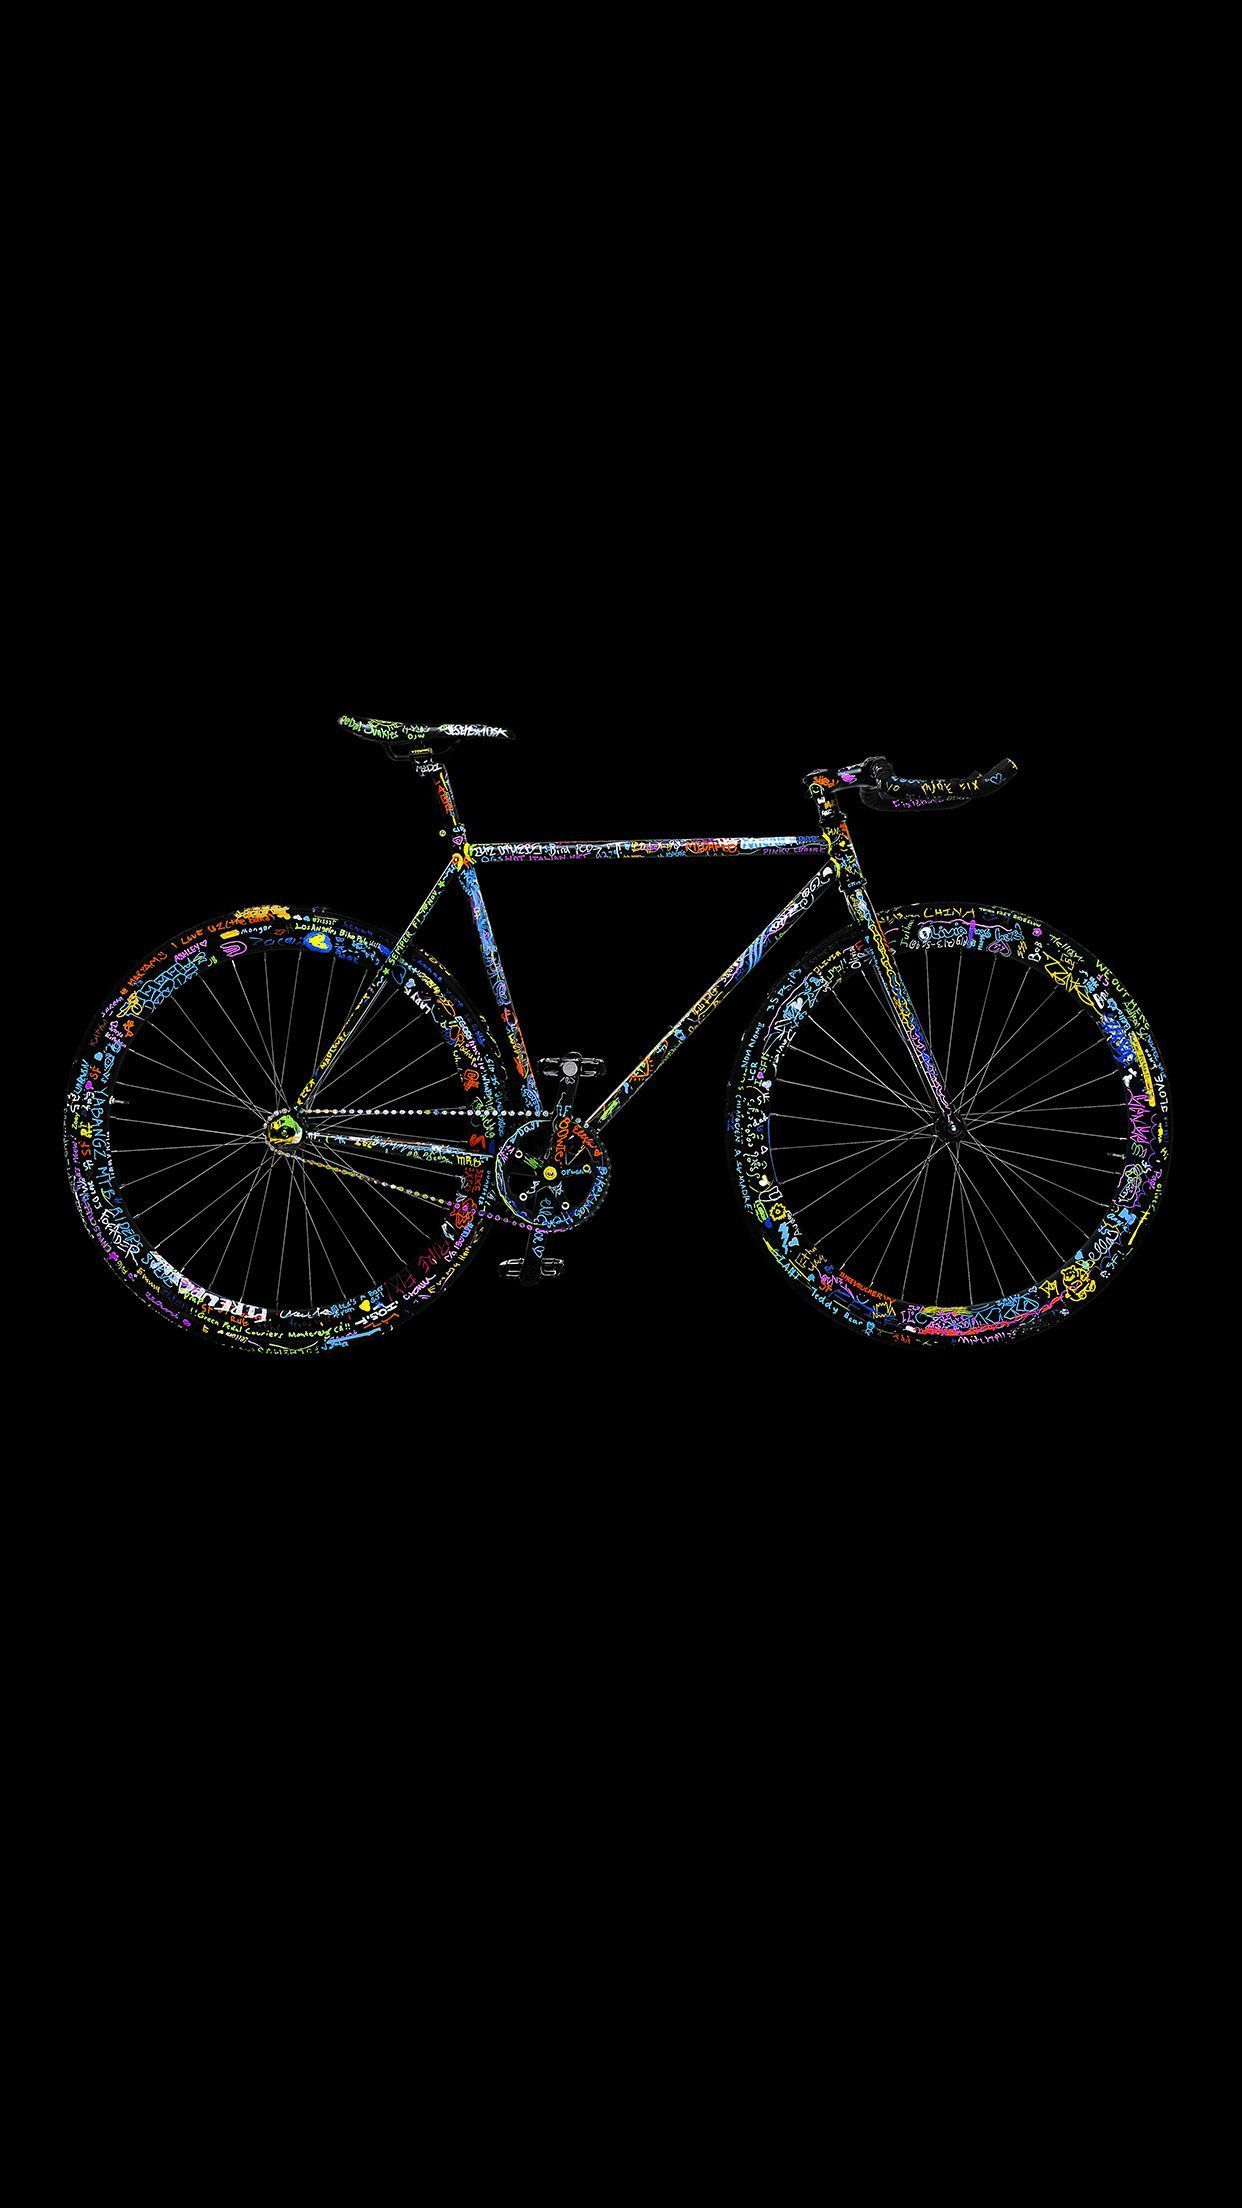 Fixie Wallpapers 2015 Wallpaper Cave Phone Wallpaper 2015